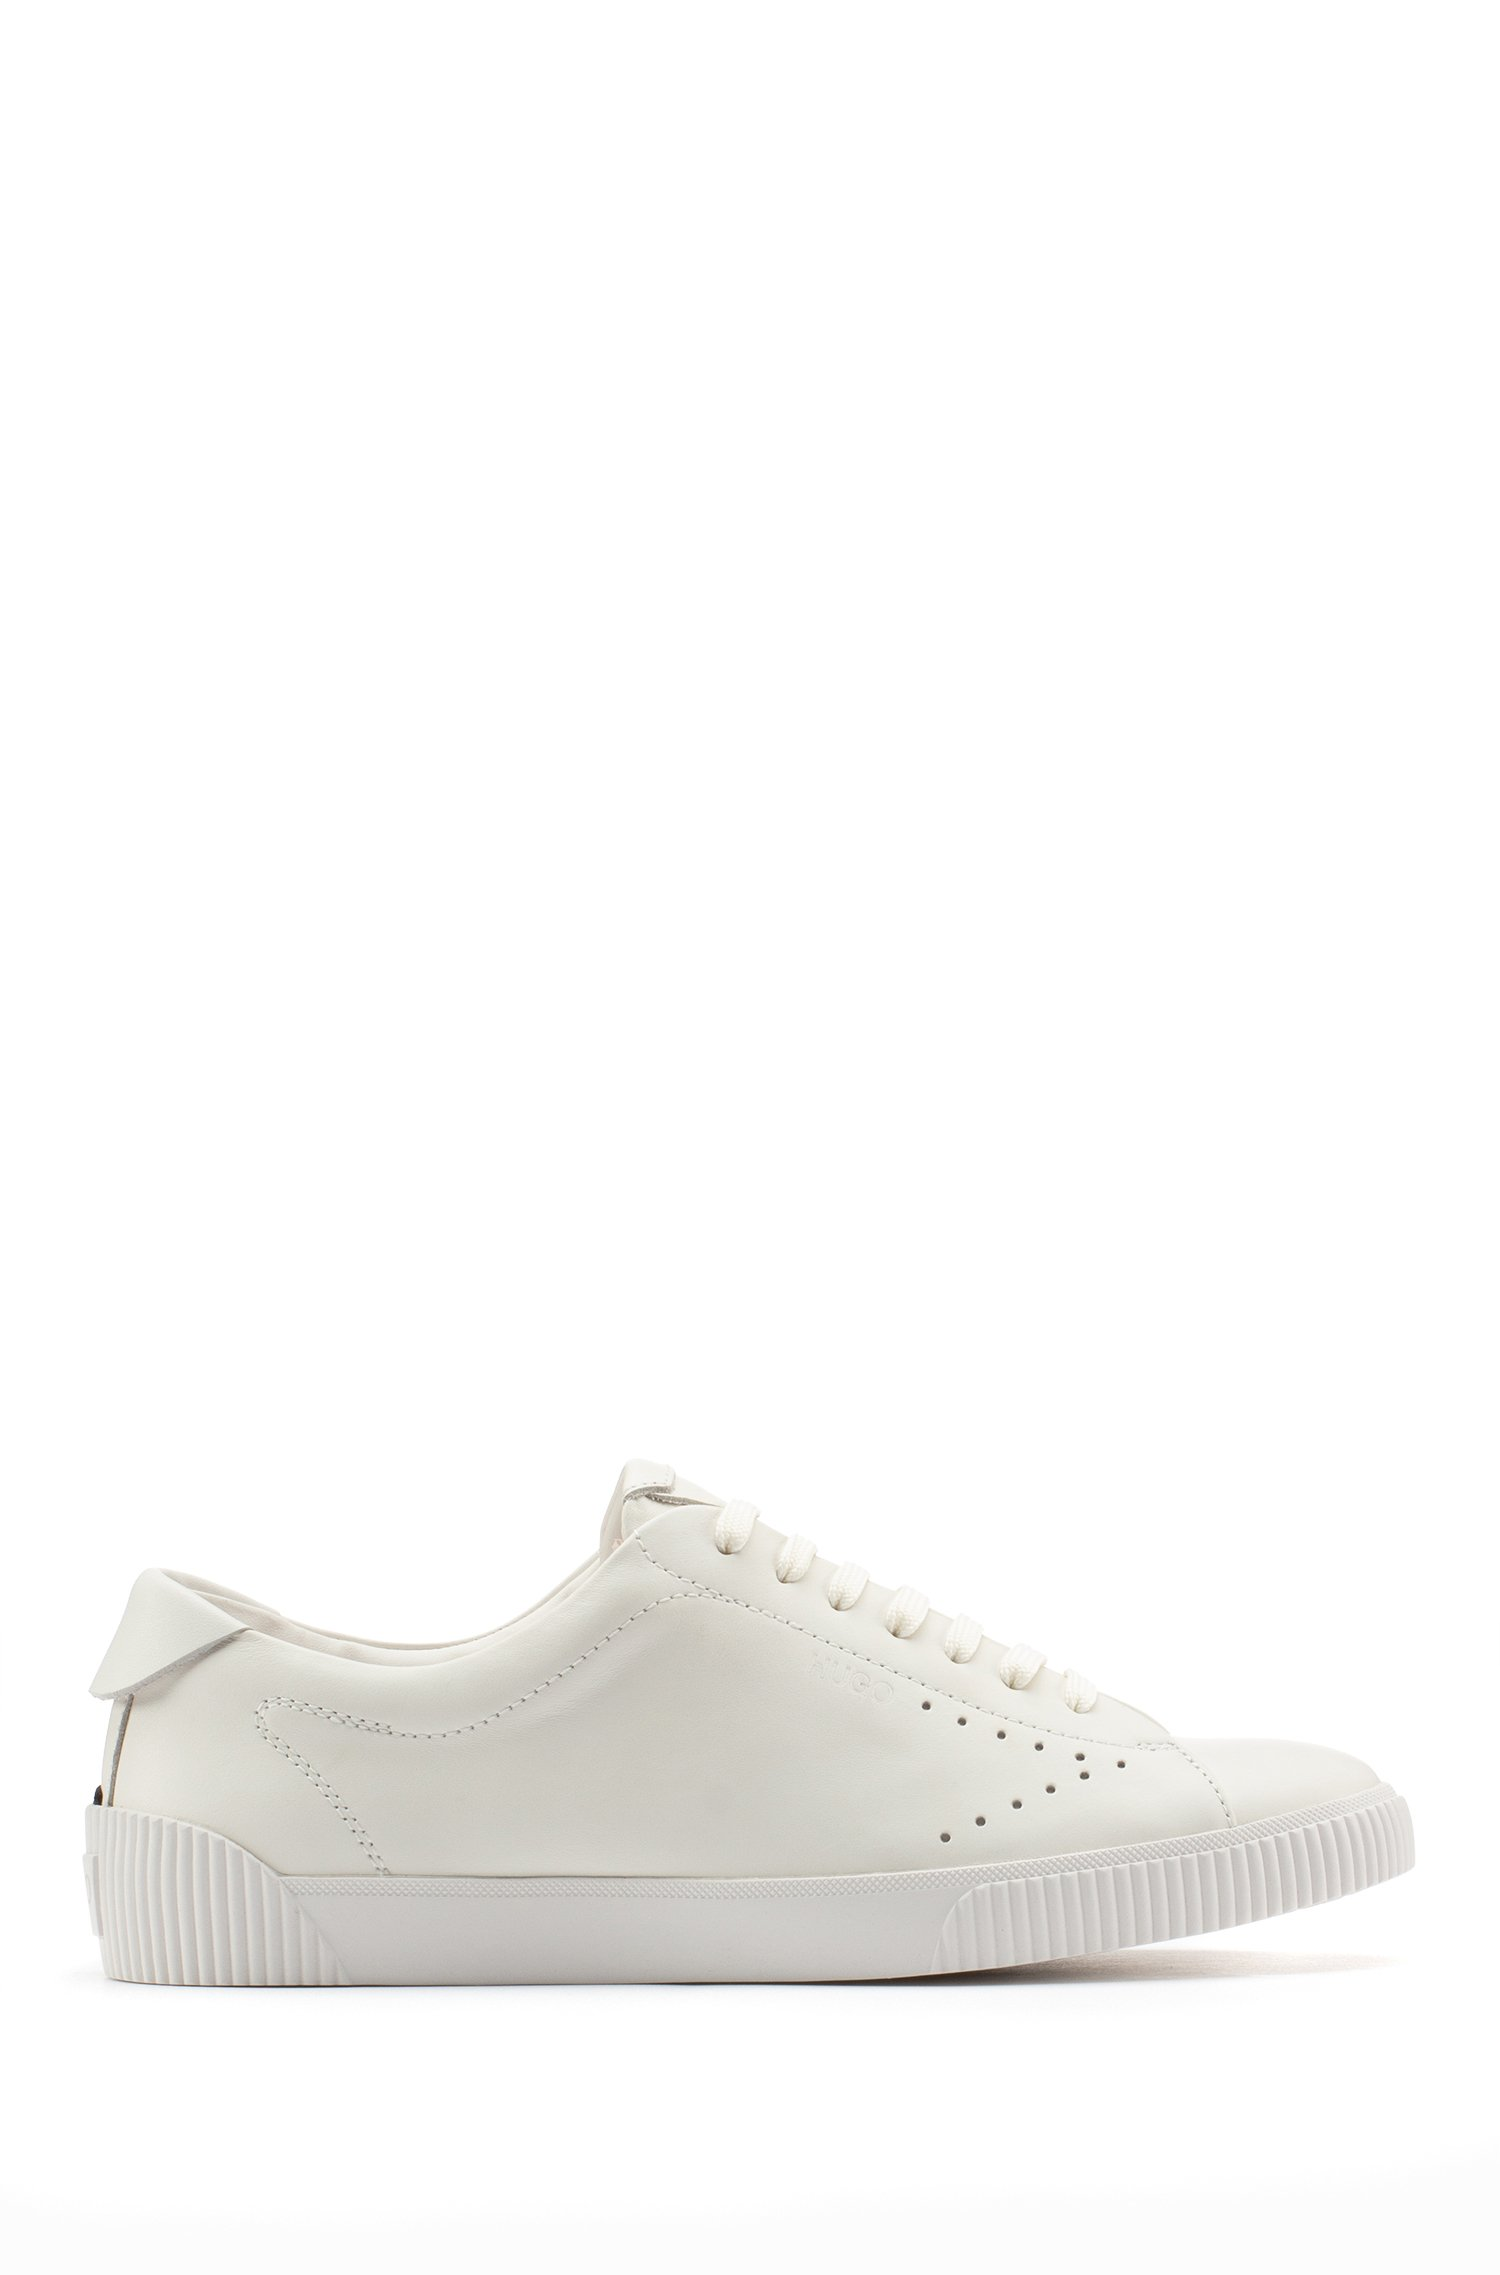 Nappa-leather trainers with perforated detailing, White